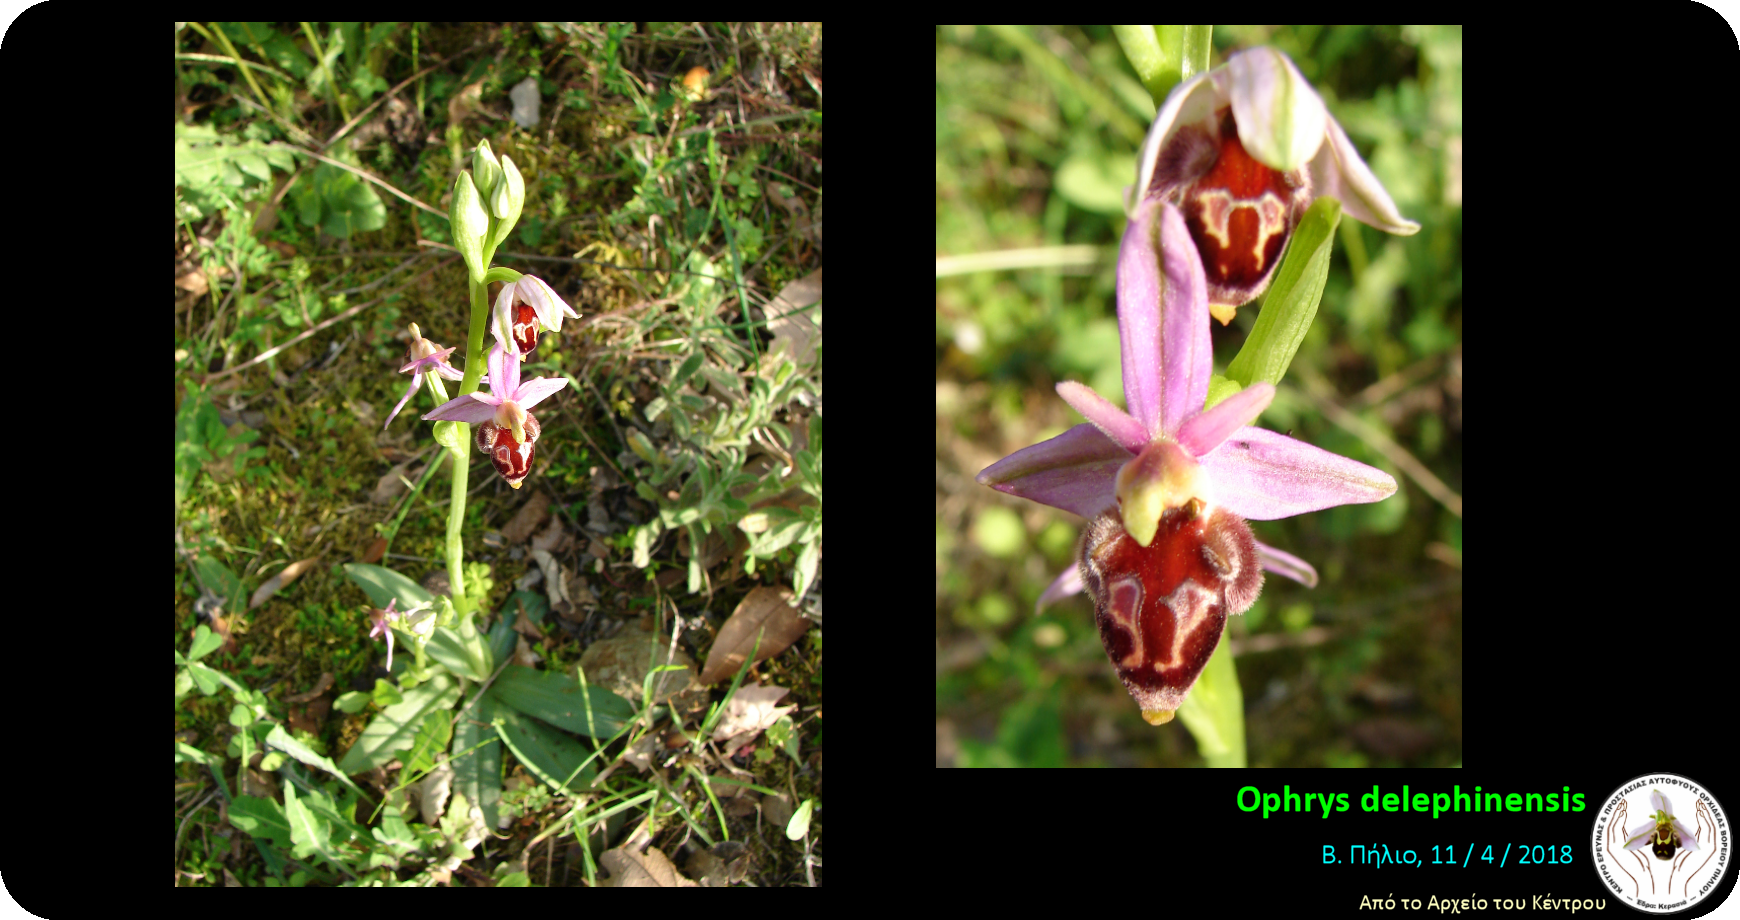 Ophrys delephinensis